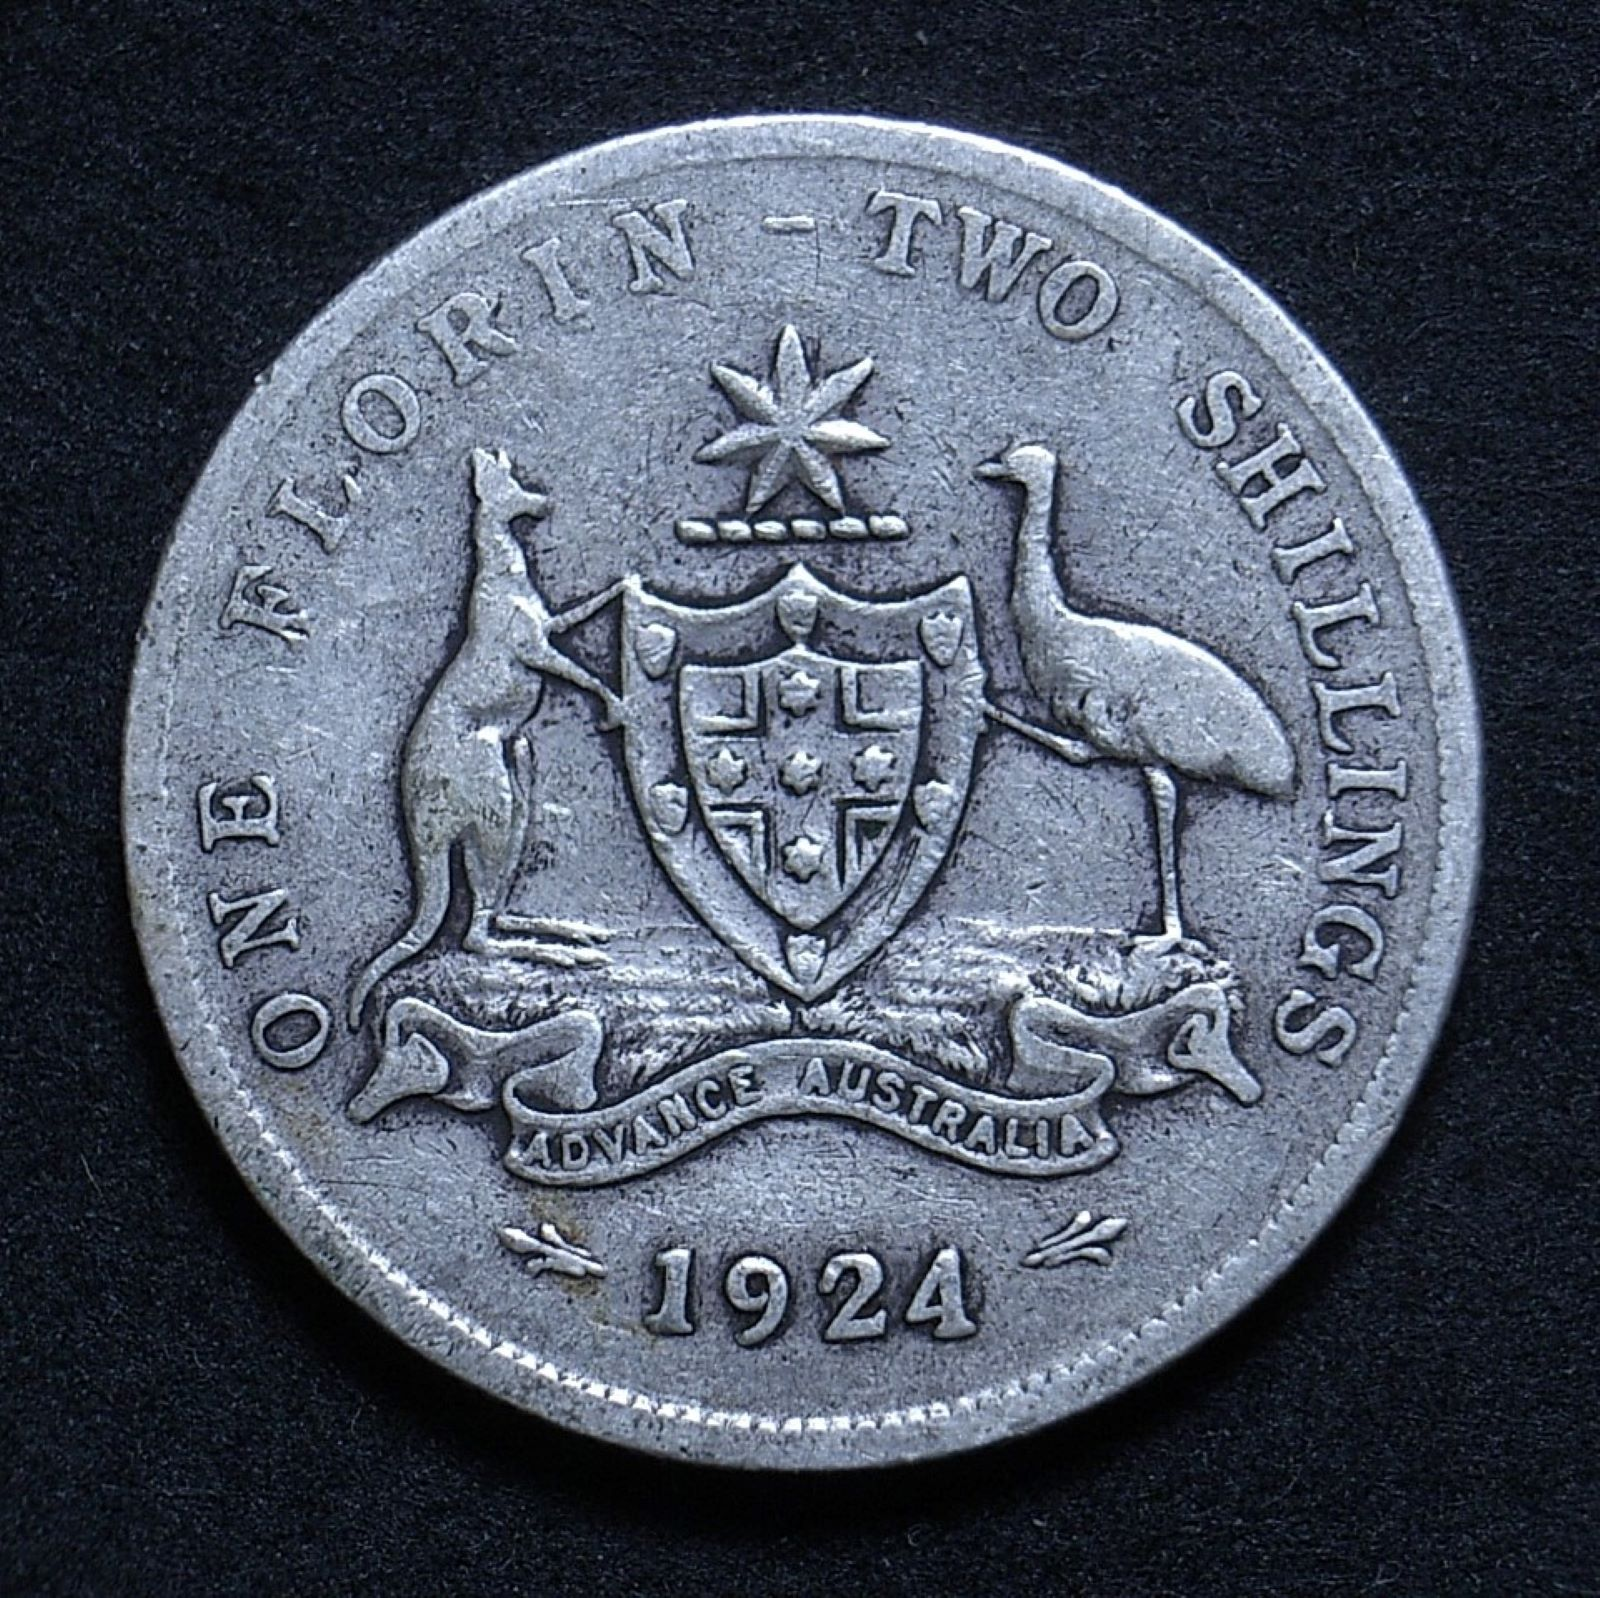 Close up of 1924 florin reverse showing the coin's detail